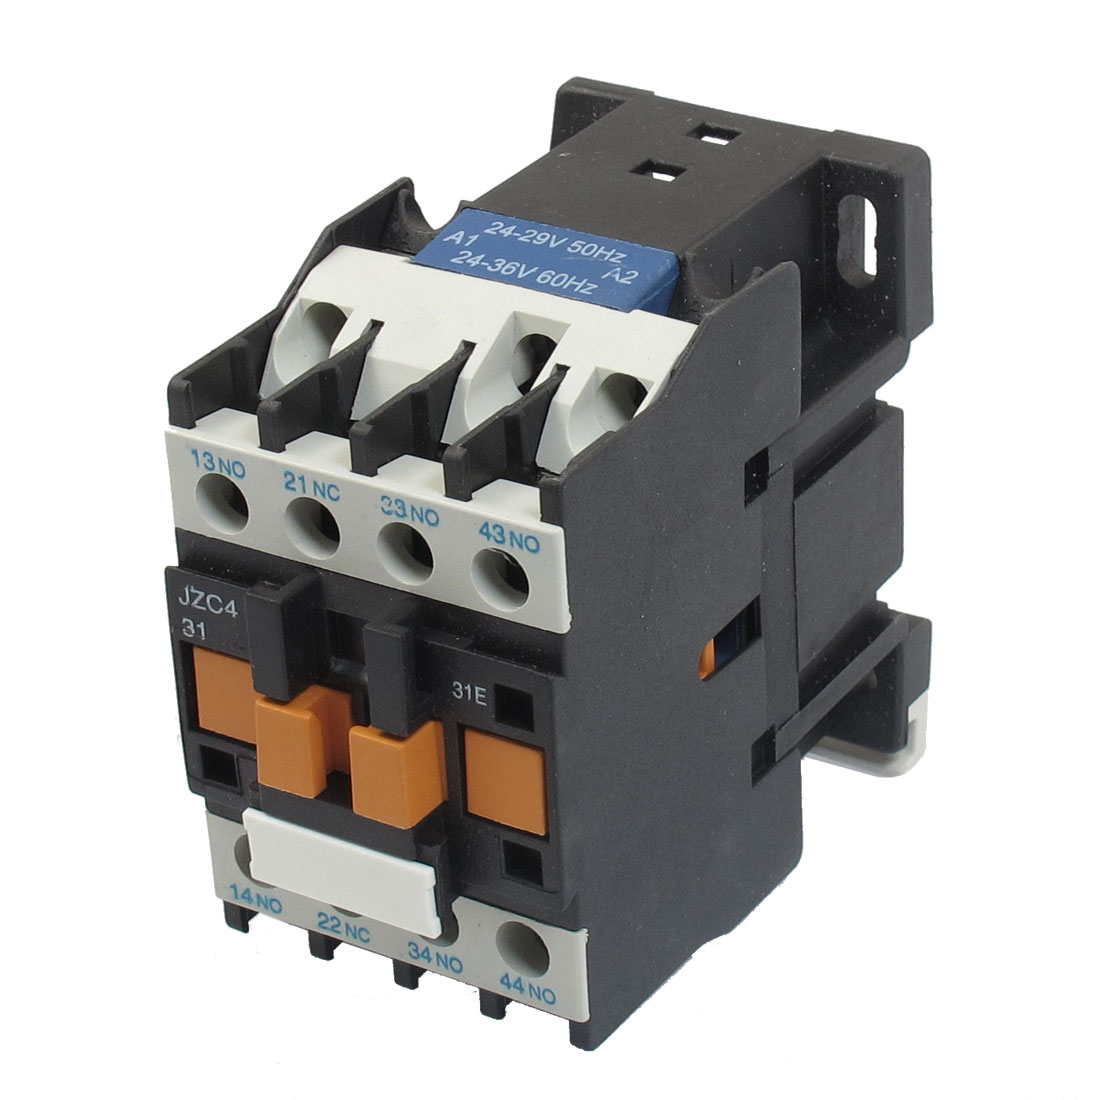 JZC4-31 24-36V 50/60Hz Coil 20A 3P Three Pole 3NO 1NC AC Contactor